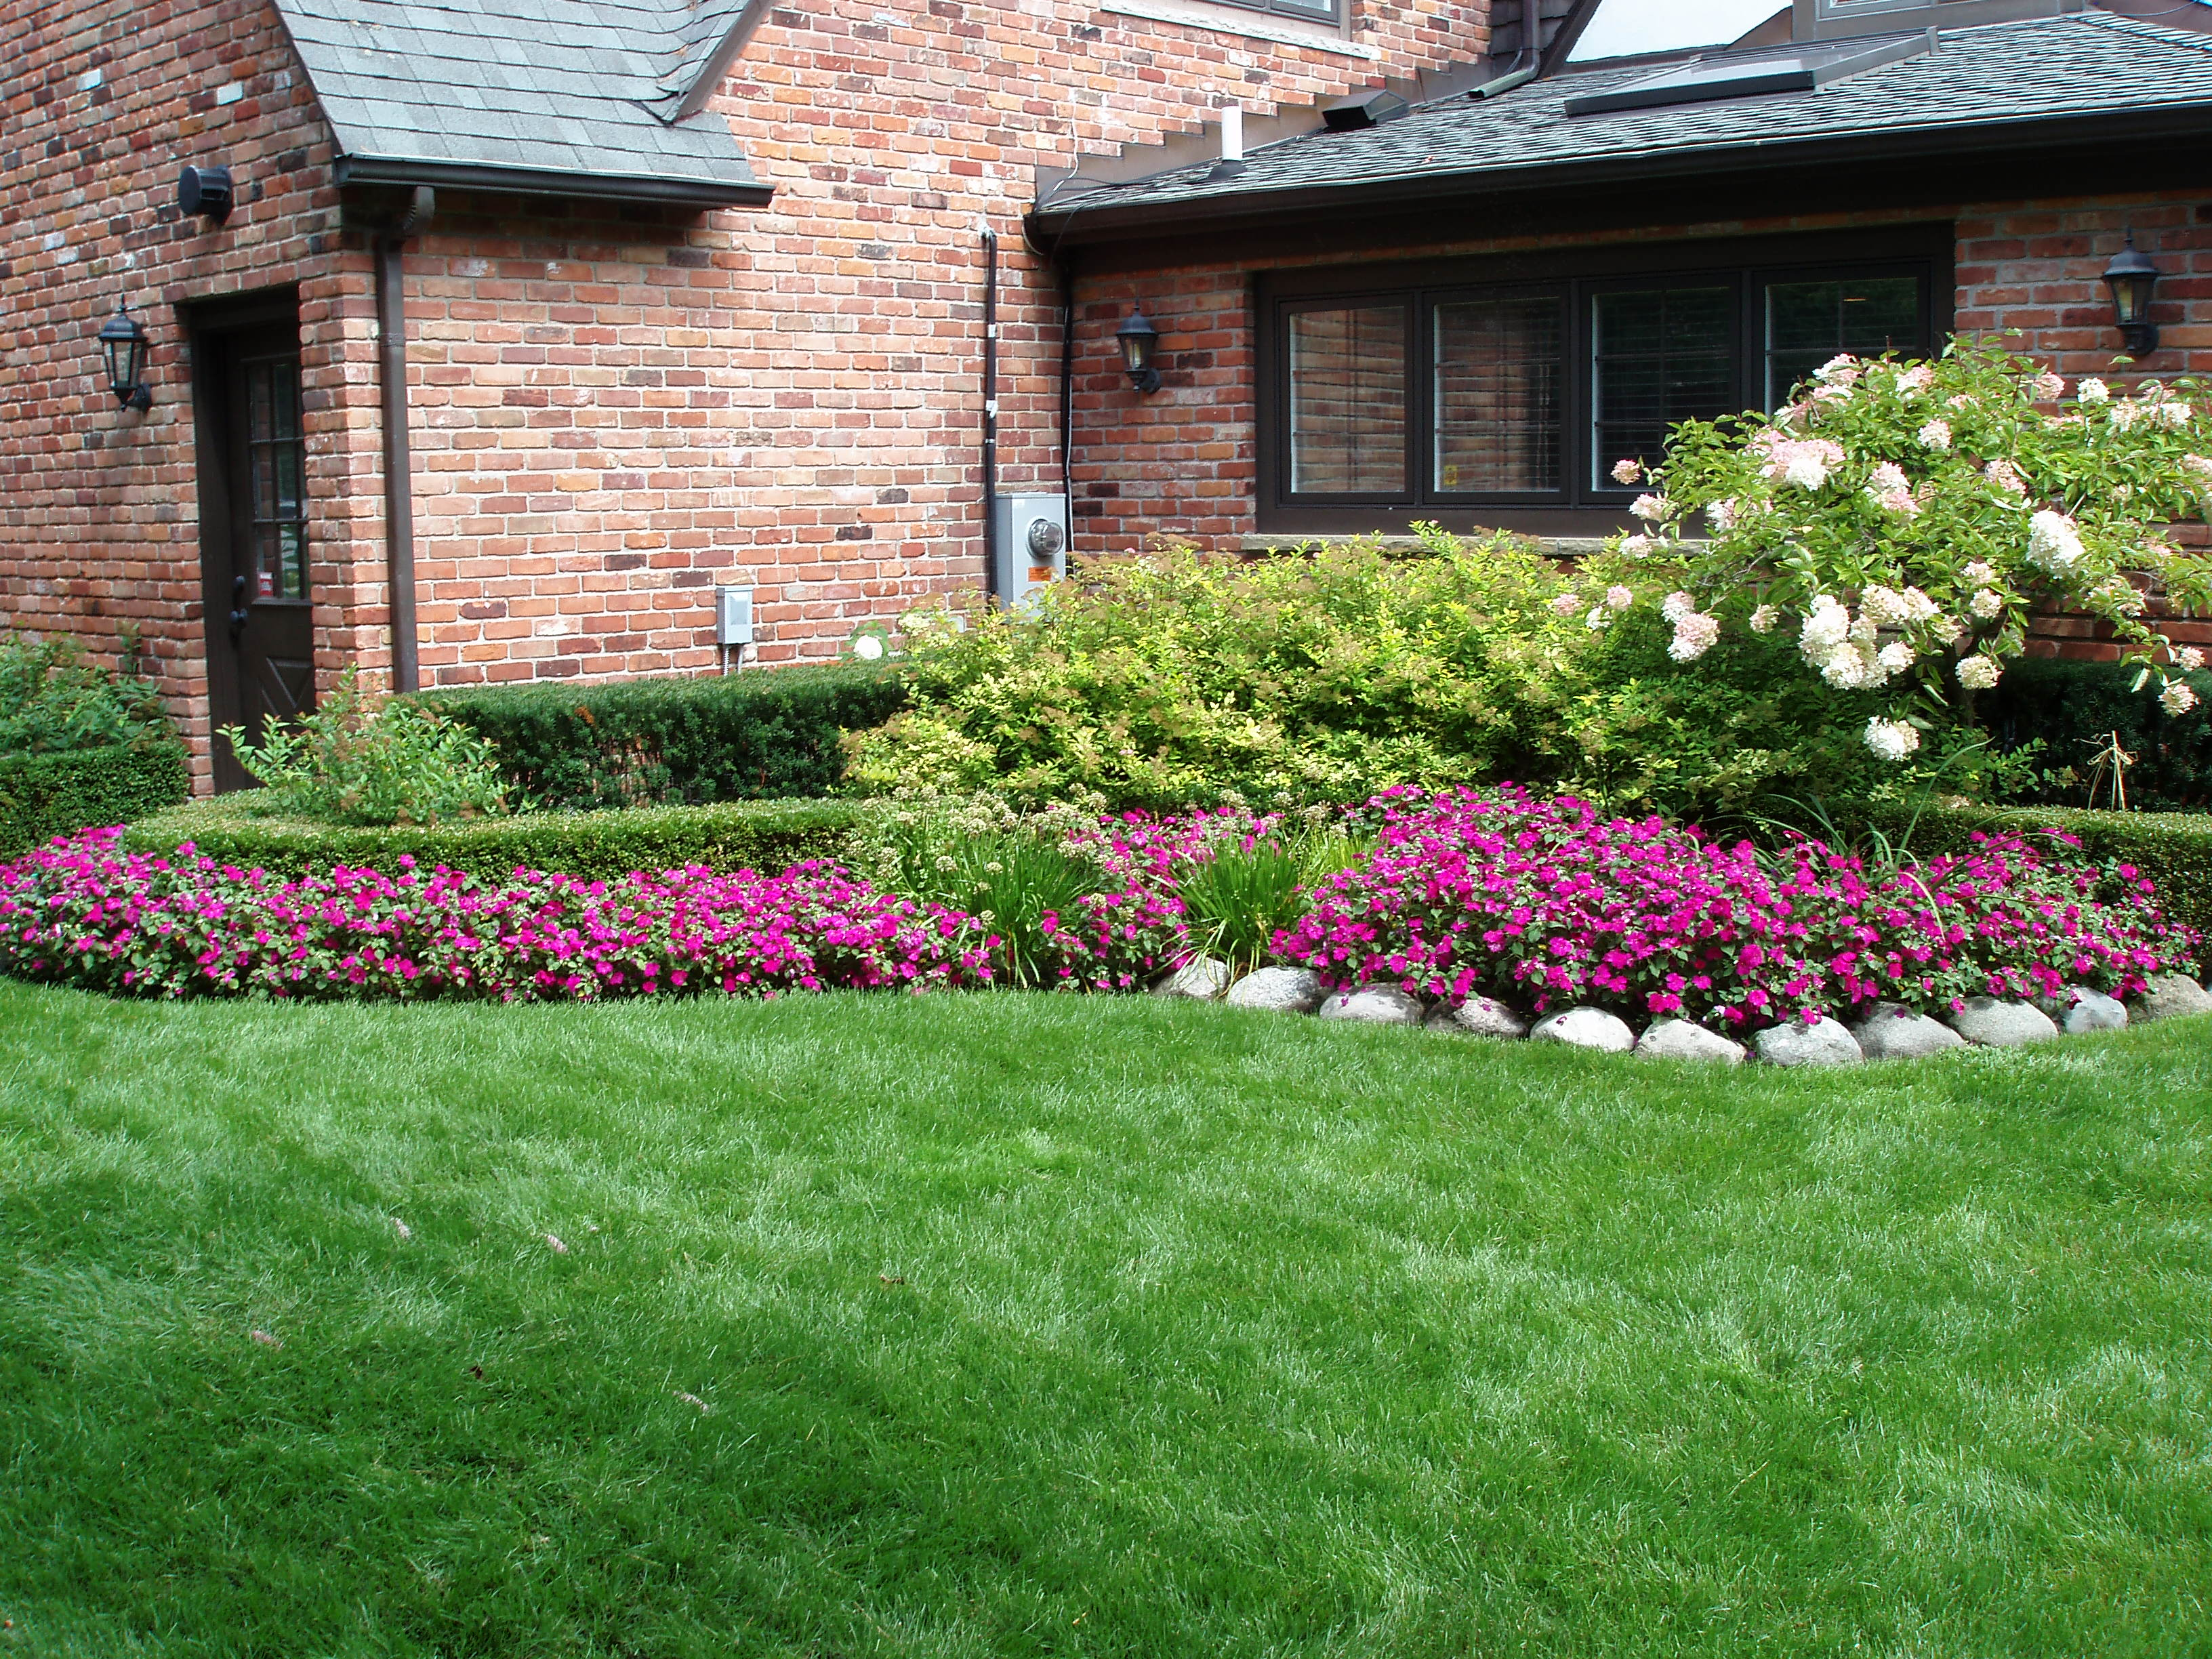 Landscaping total lawn care inc full lawn maintenance for Garden and landscaping ideas